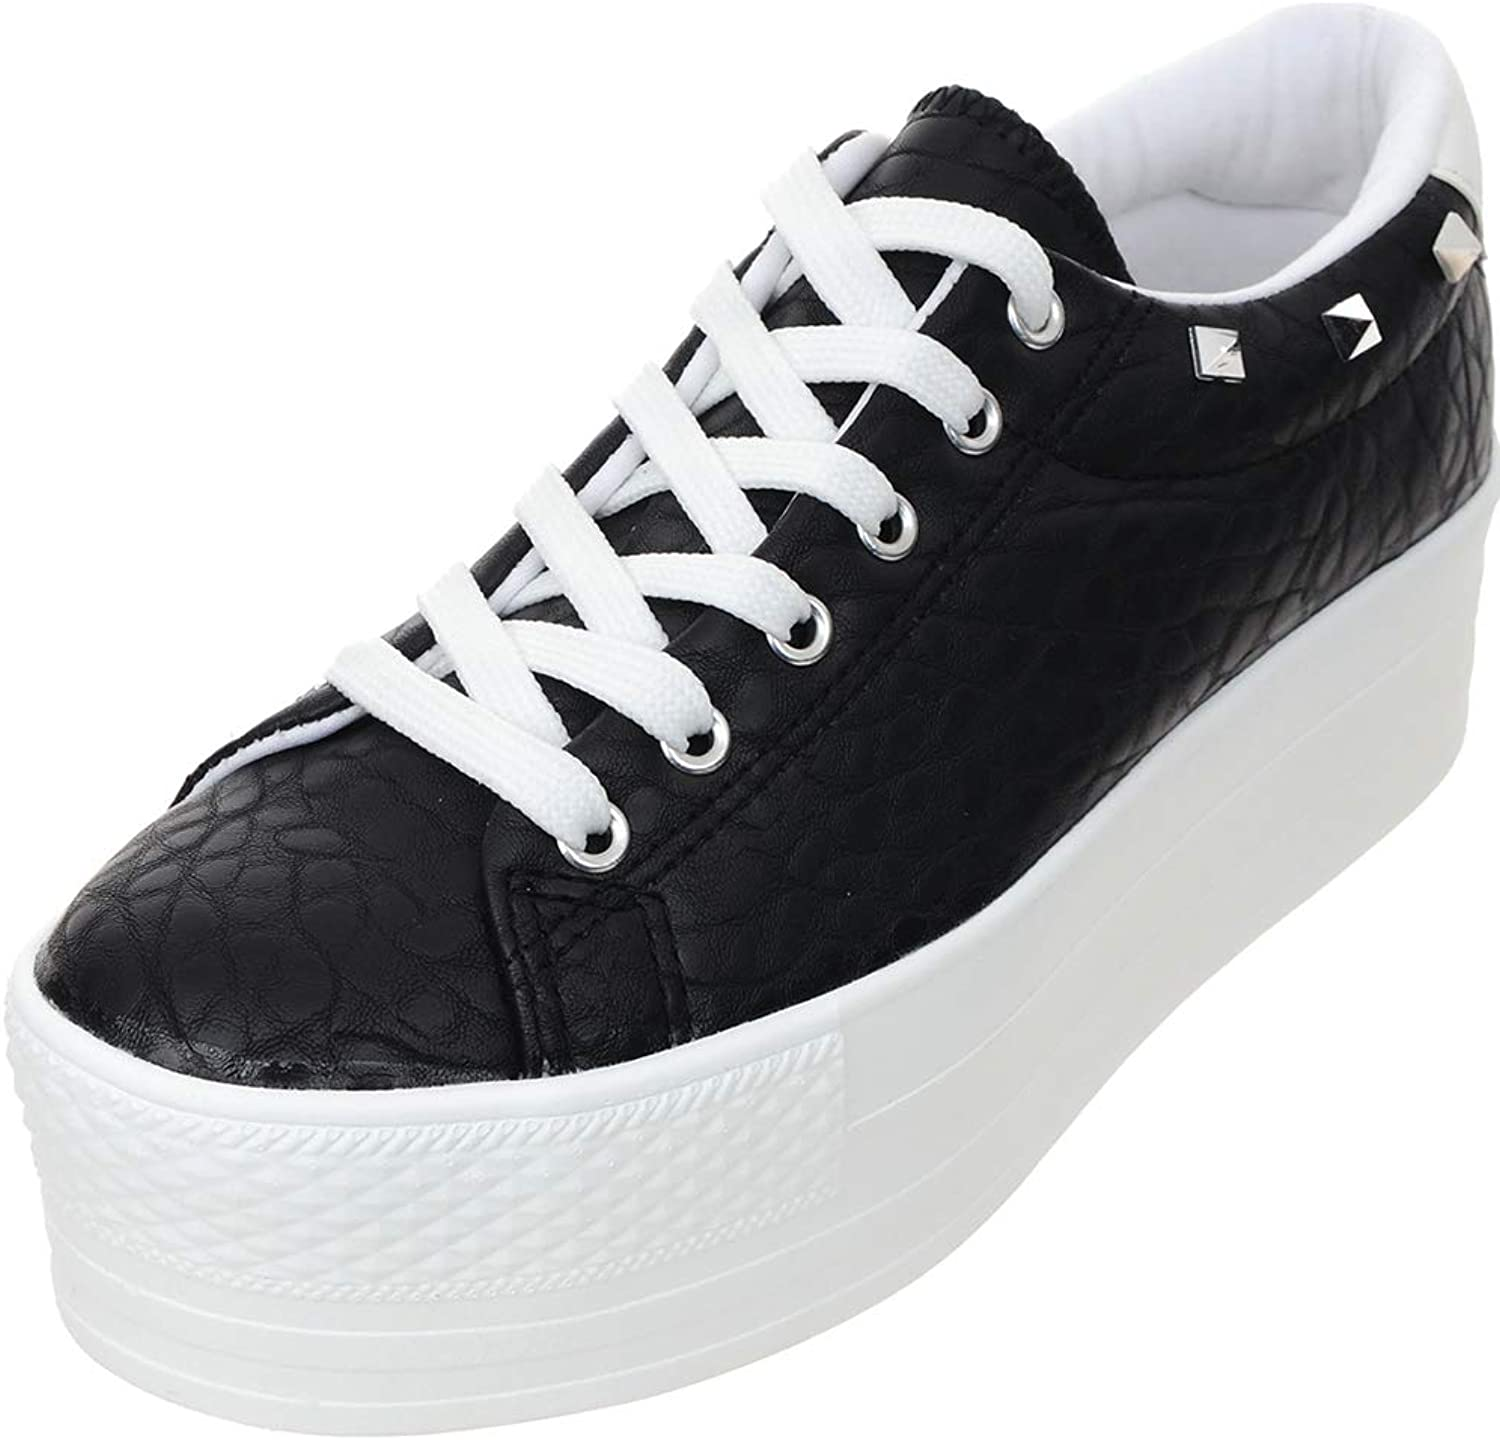 Maxstar Women's C7 6Holes 50 Synthetic Leather White Platform Jewel Decoration Low Top Sneakers